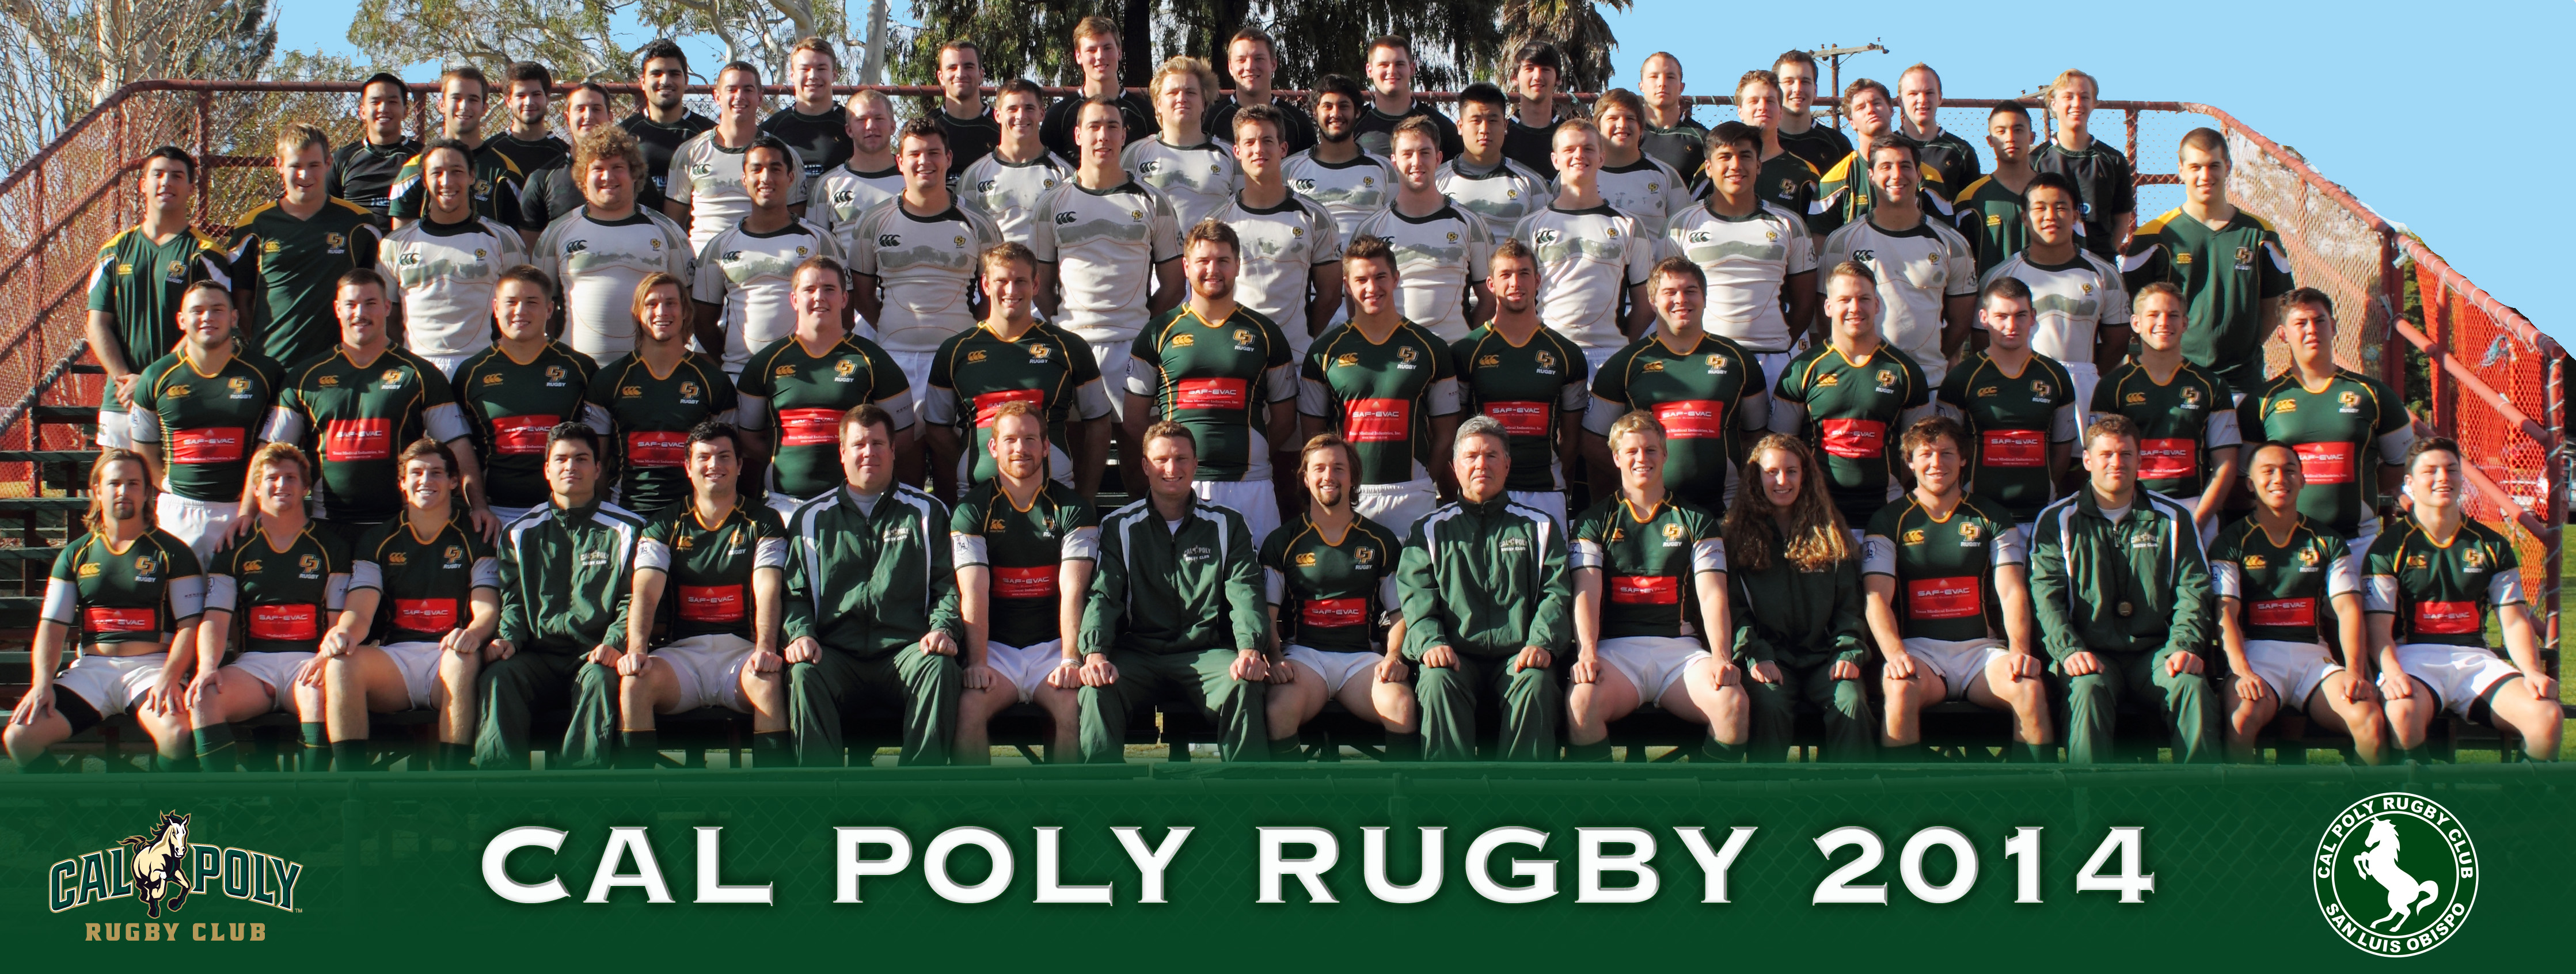 Cal Poly Rugby Head Coach Dave Burnett Resigns Cal Poly Rugby